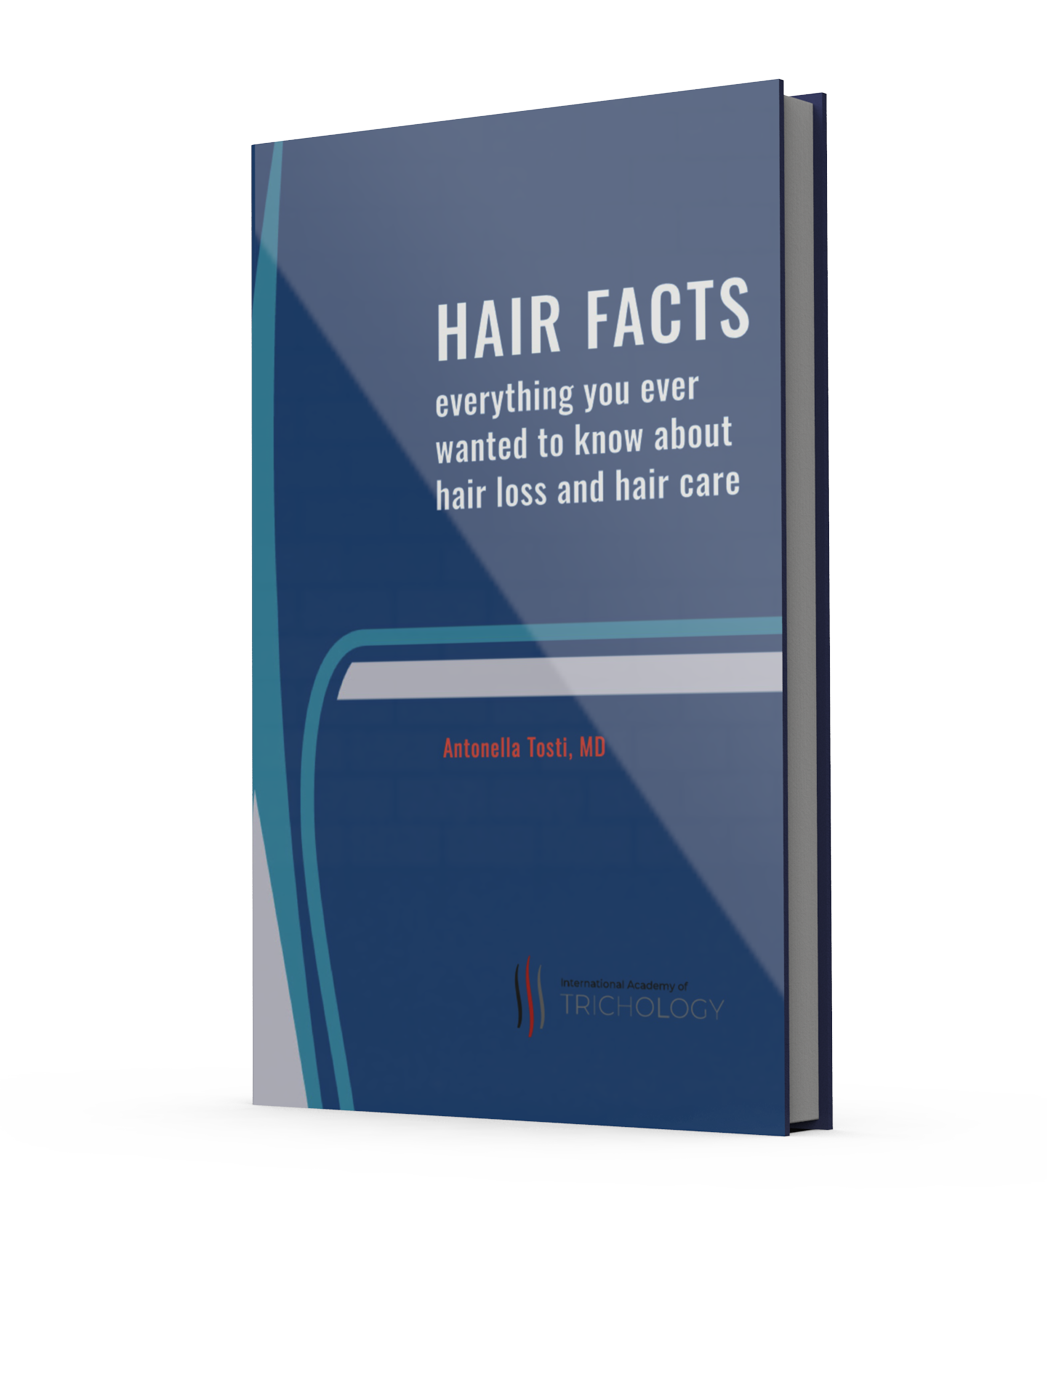 Hair Facts By Antonella Tosti